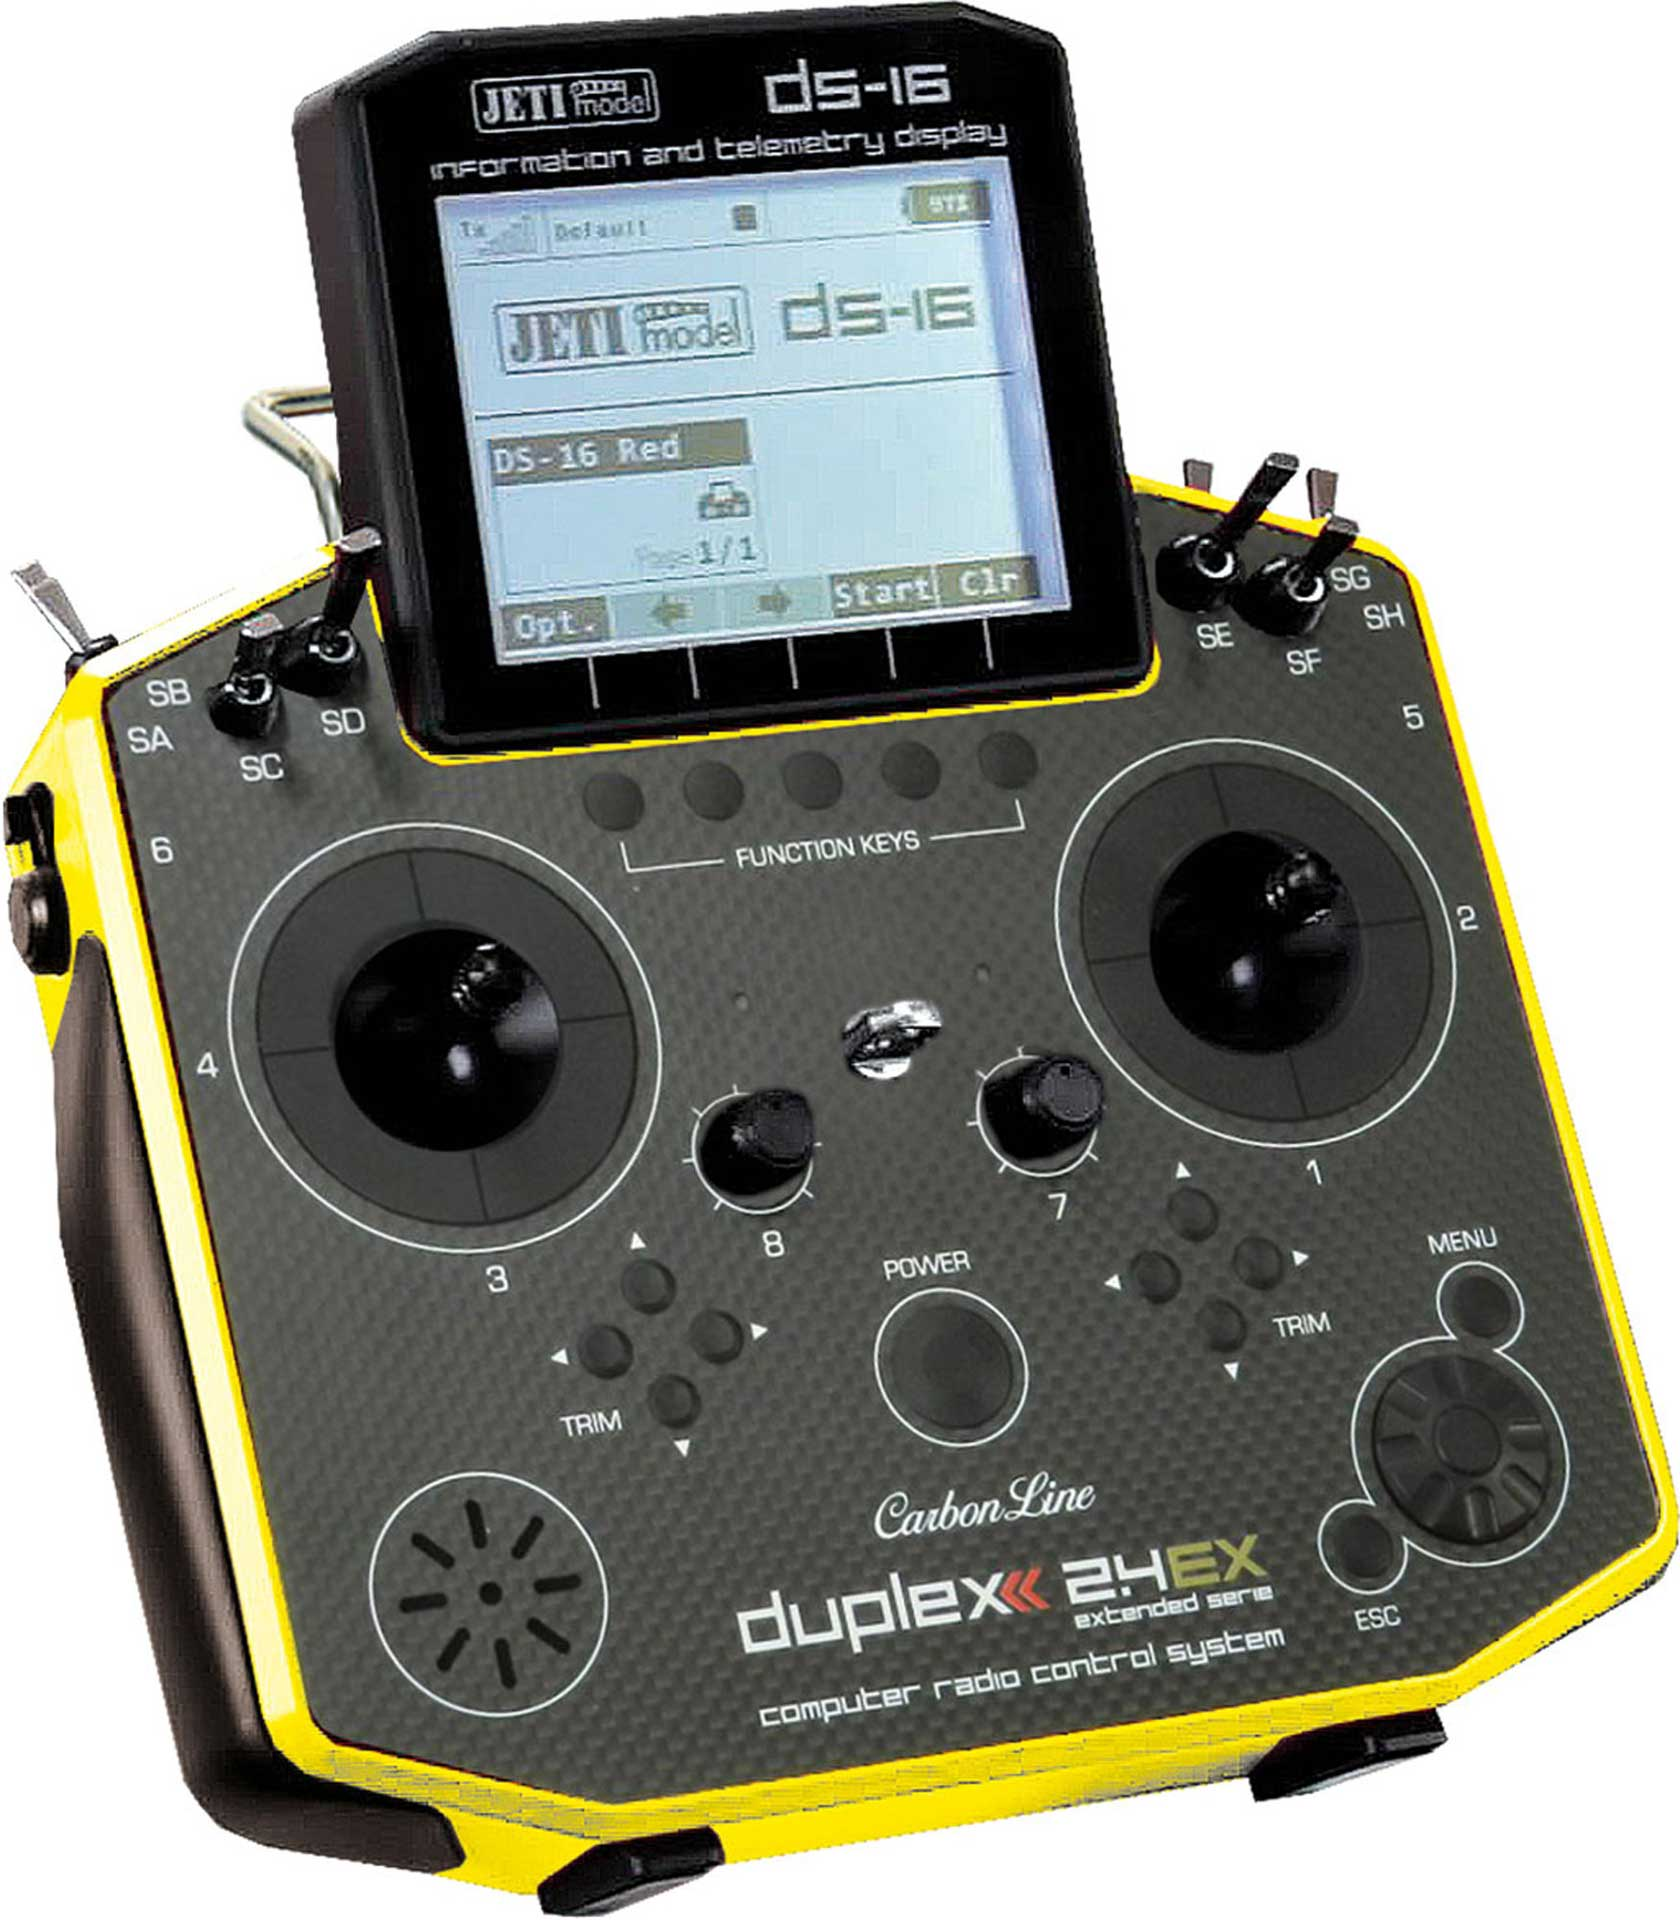 JETI DS-16 2.4EX DUPLEX CARBON MULTIMODE  YELLOW WITH R9 2.4EX RECEIVER TRANSMITTER